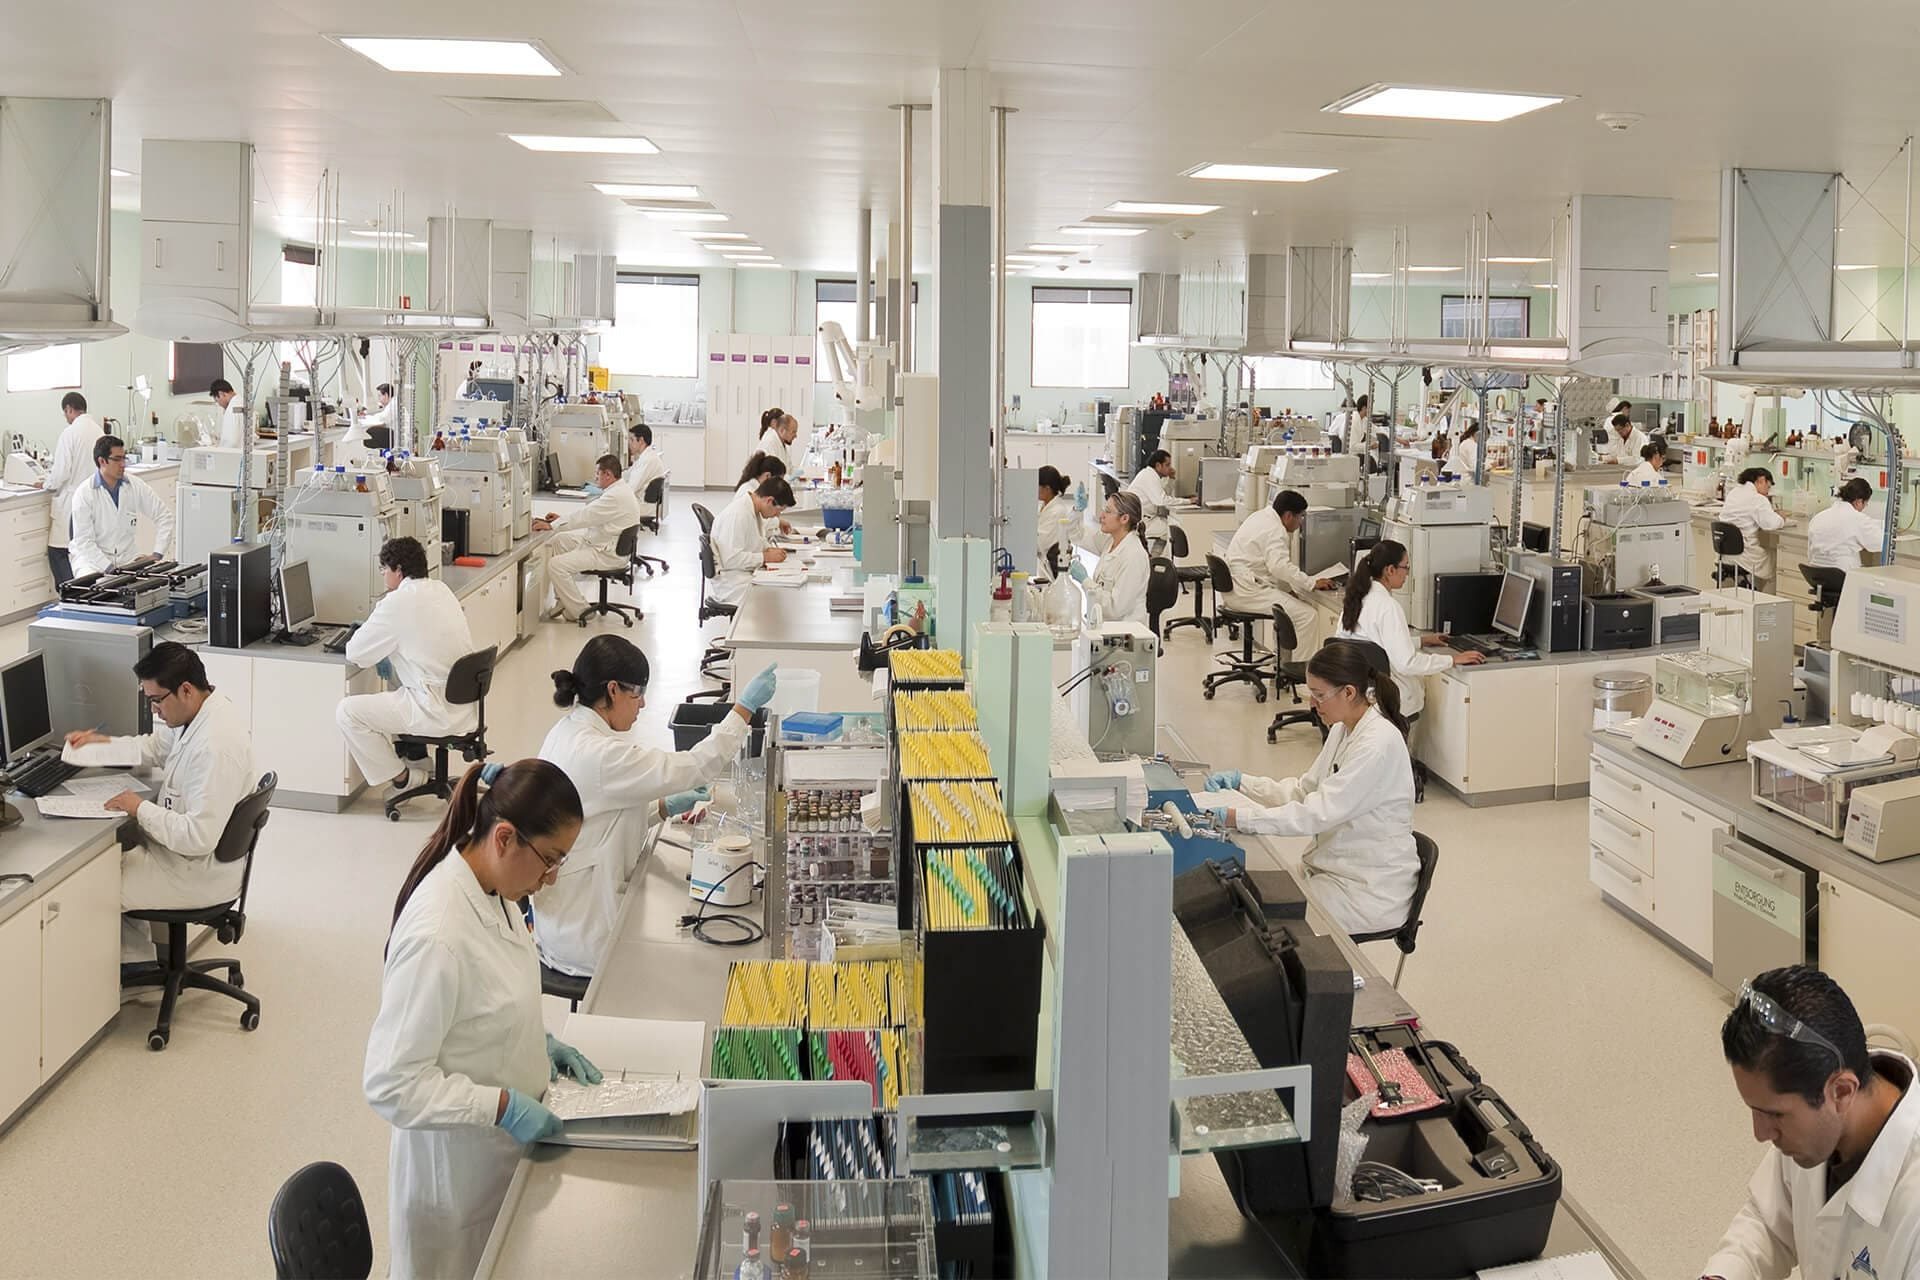 Laboratorios farmaceuticos en mexico